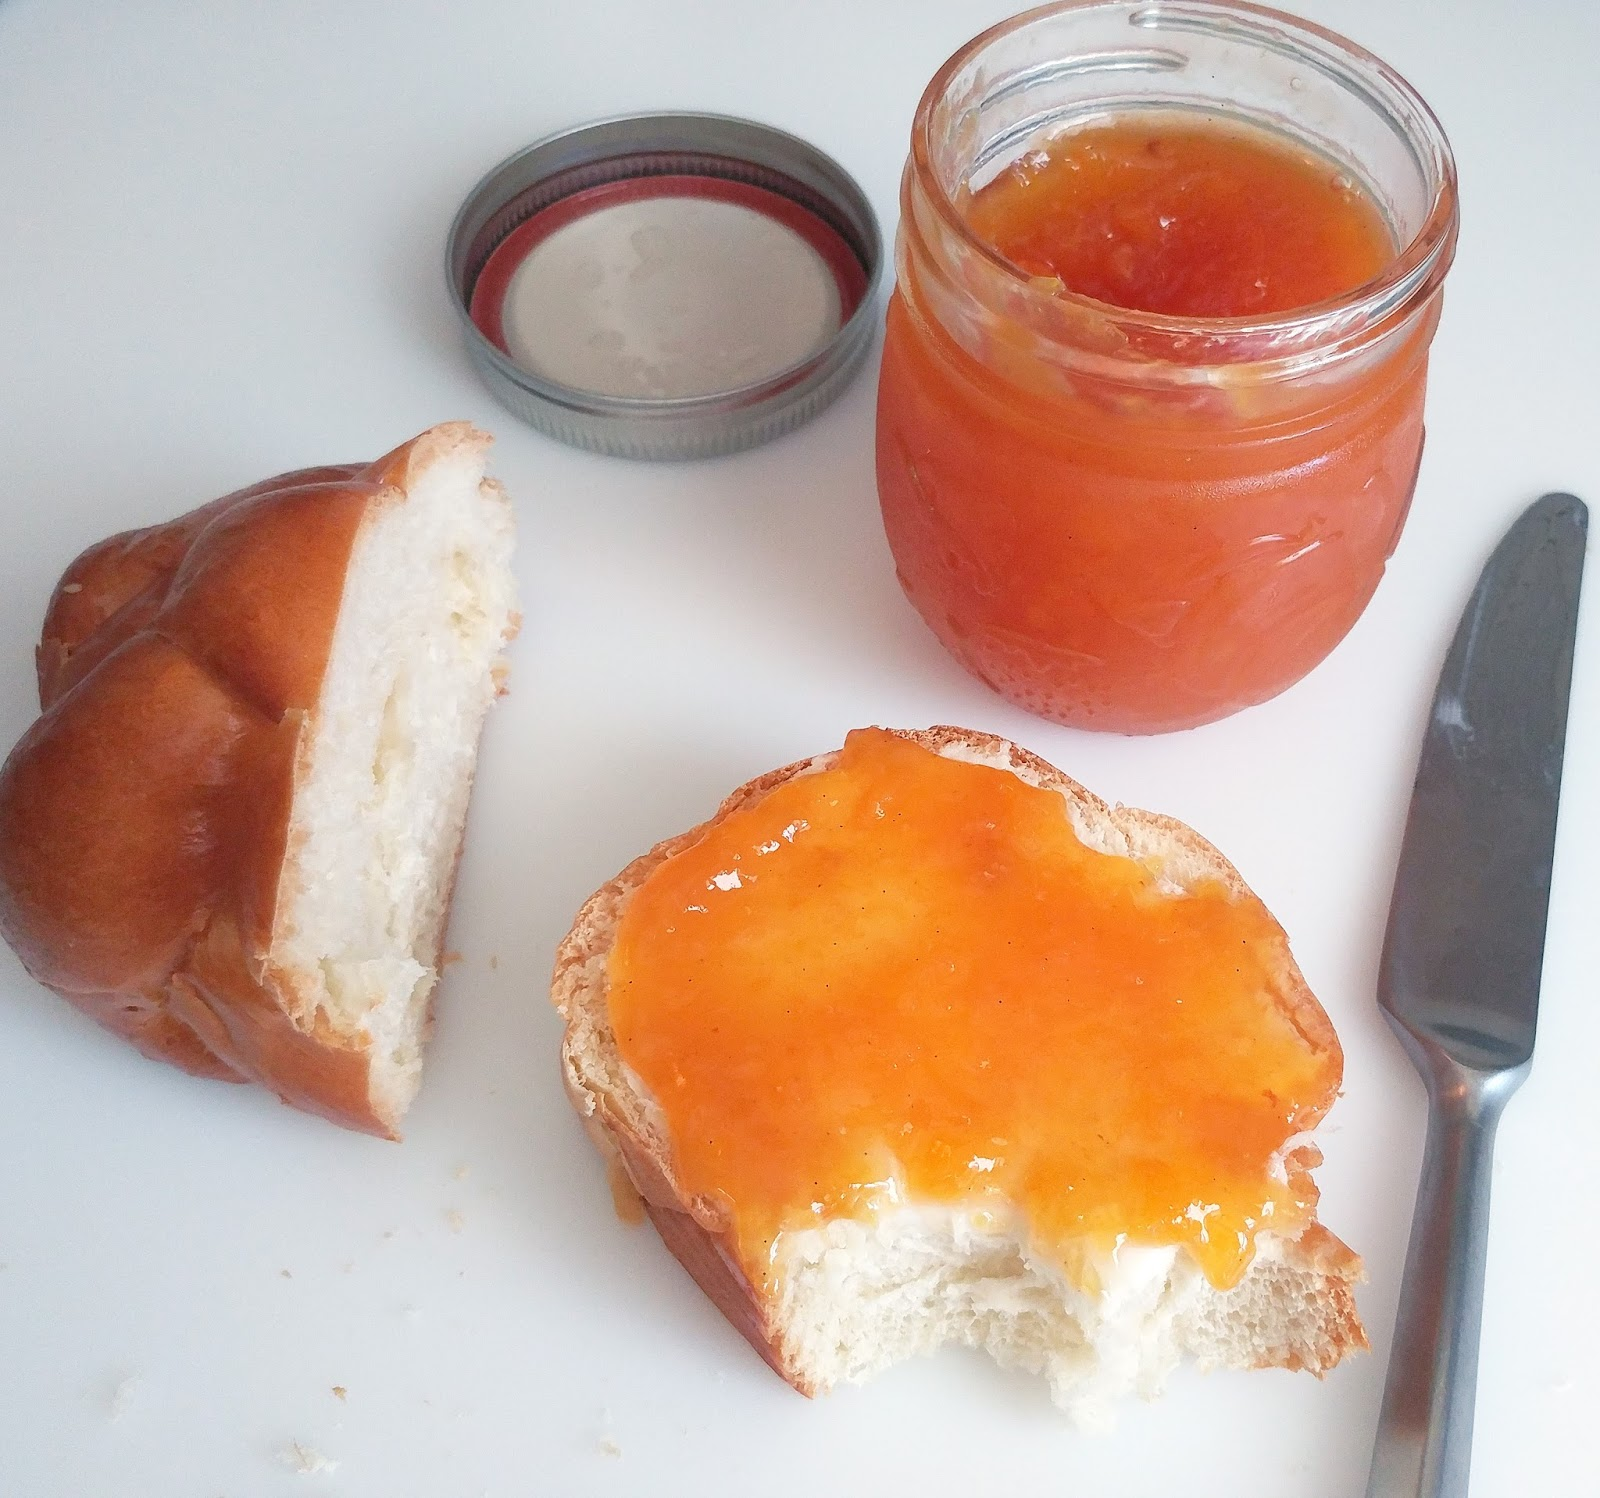 Culturally Confused: Serious Eats: Vanilla Bourbon Peach Jam